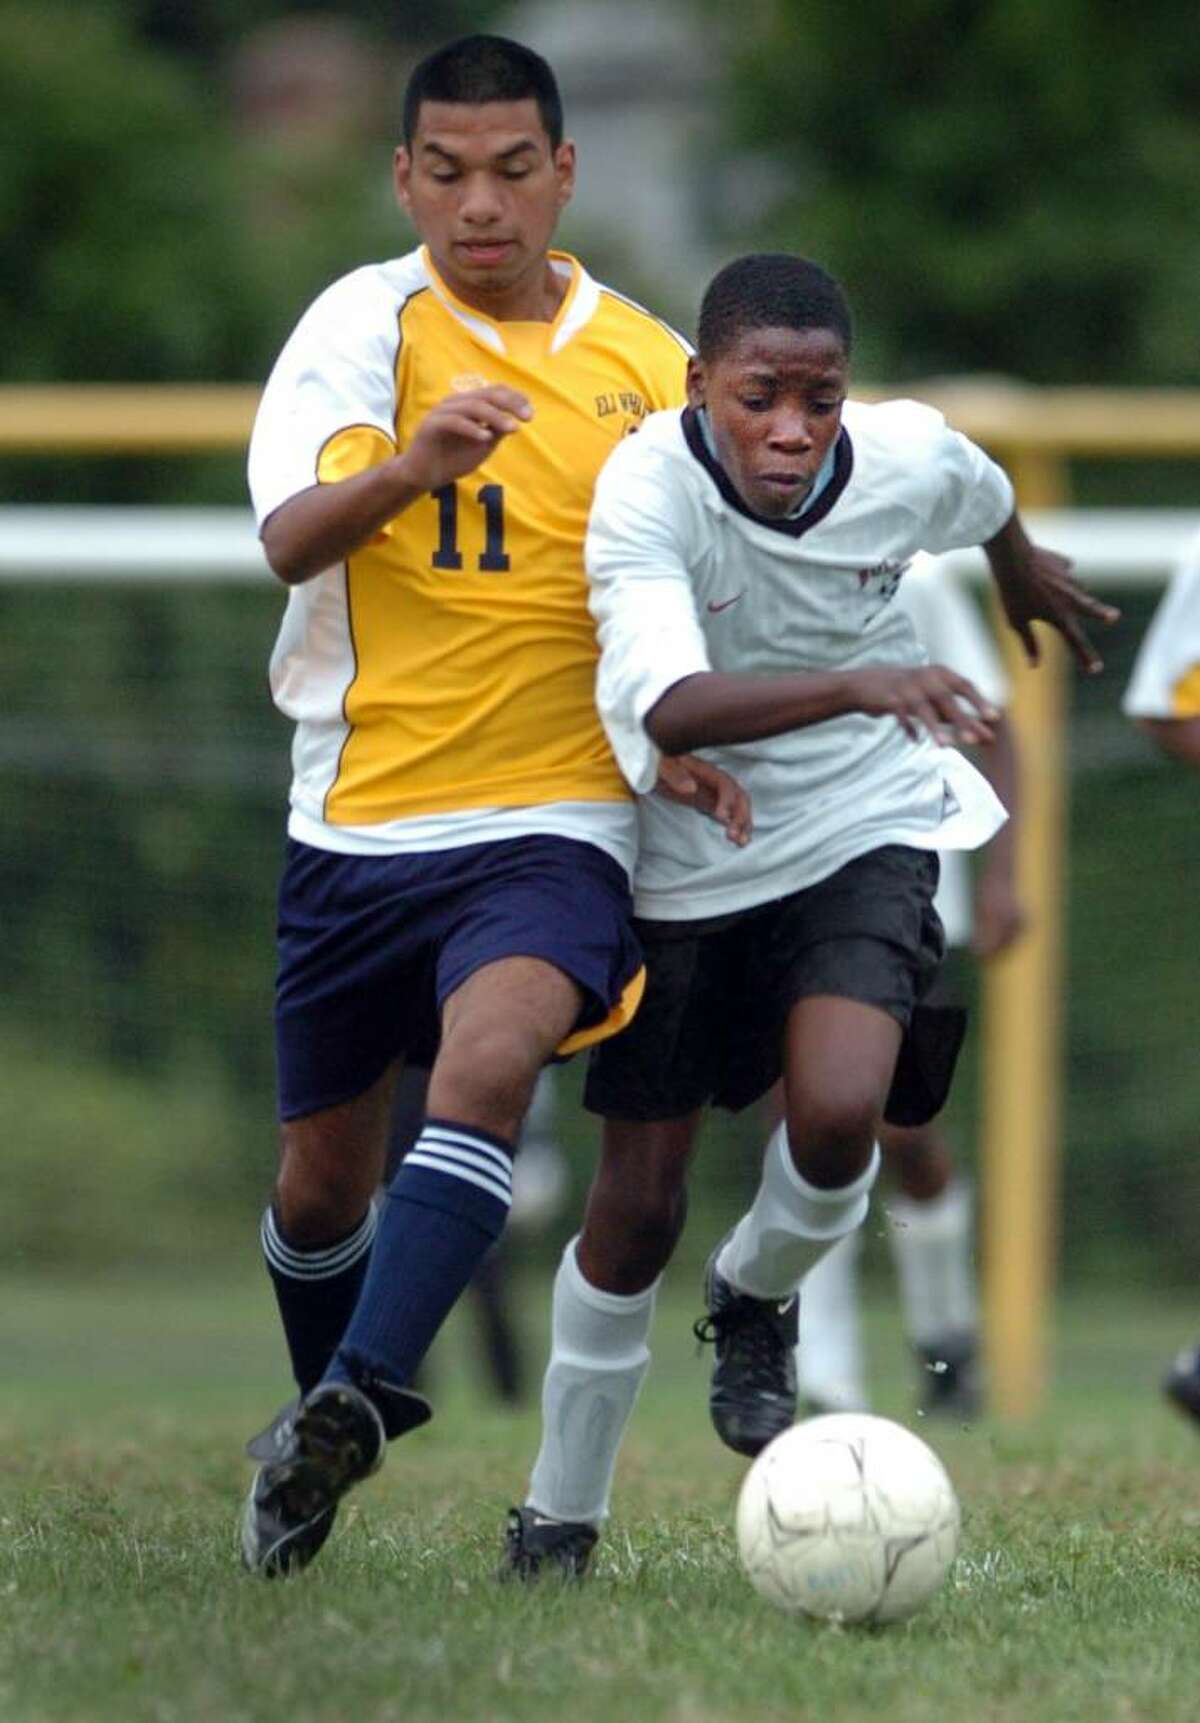 Bullard-Haven's Christopher Joseph, right, and Eli Whitney's Victor Becerra chase down the ball during the second half of Tuesday's game in Bridgeport.